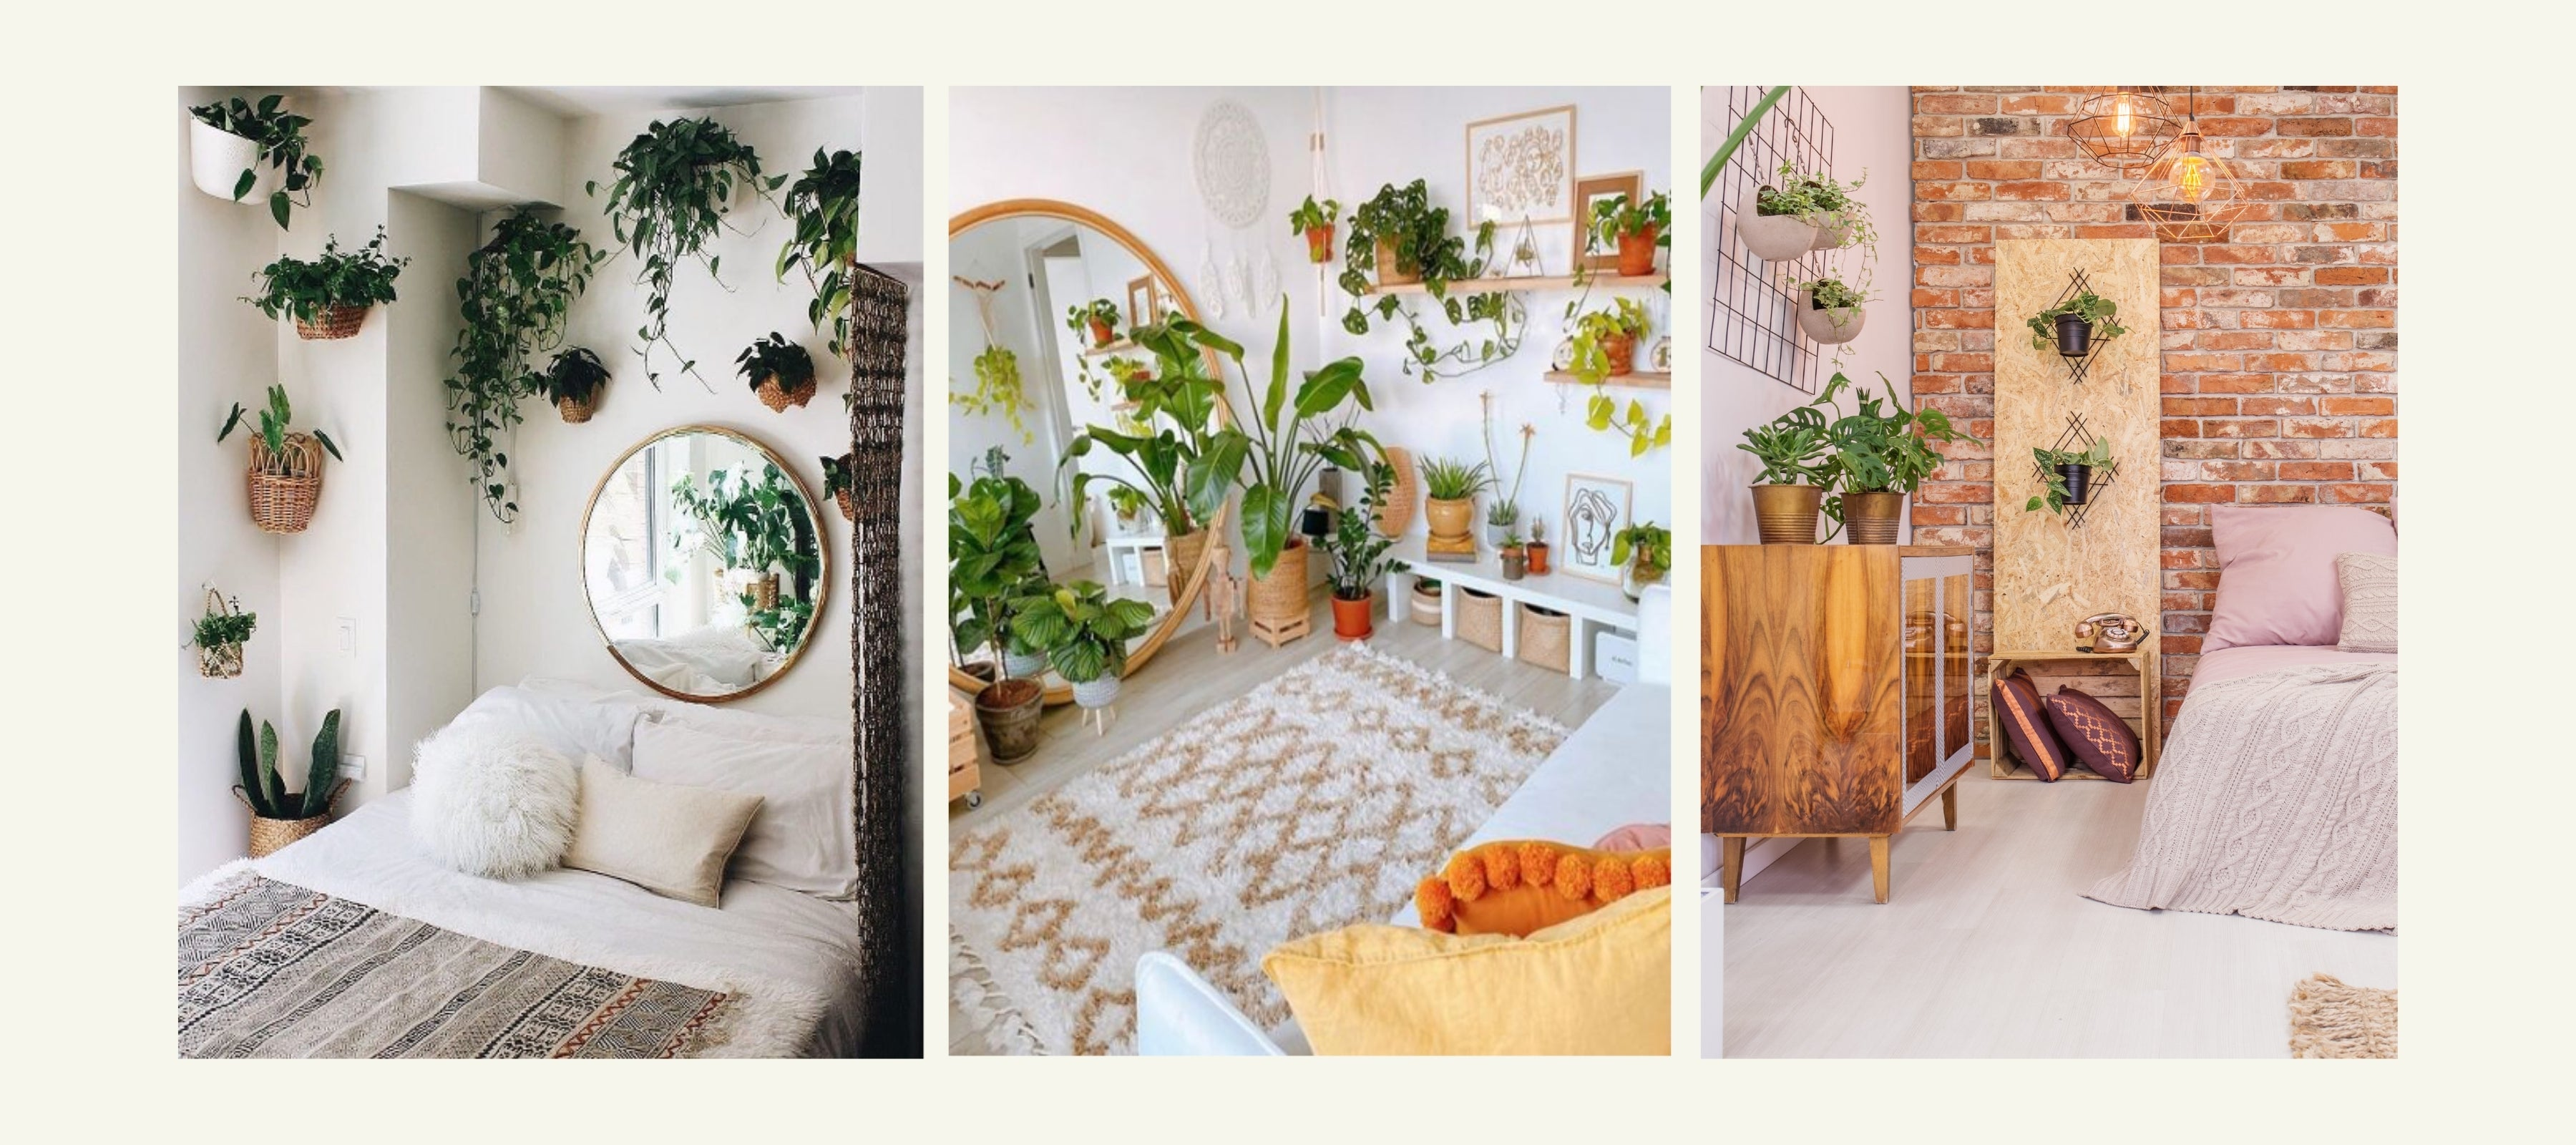 style your bedroom with plants